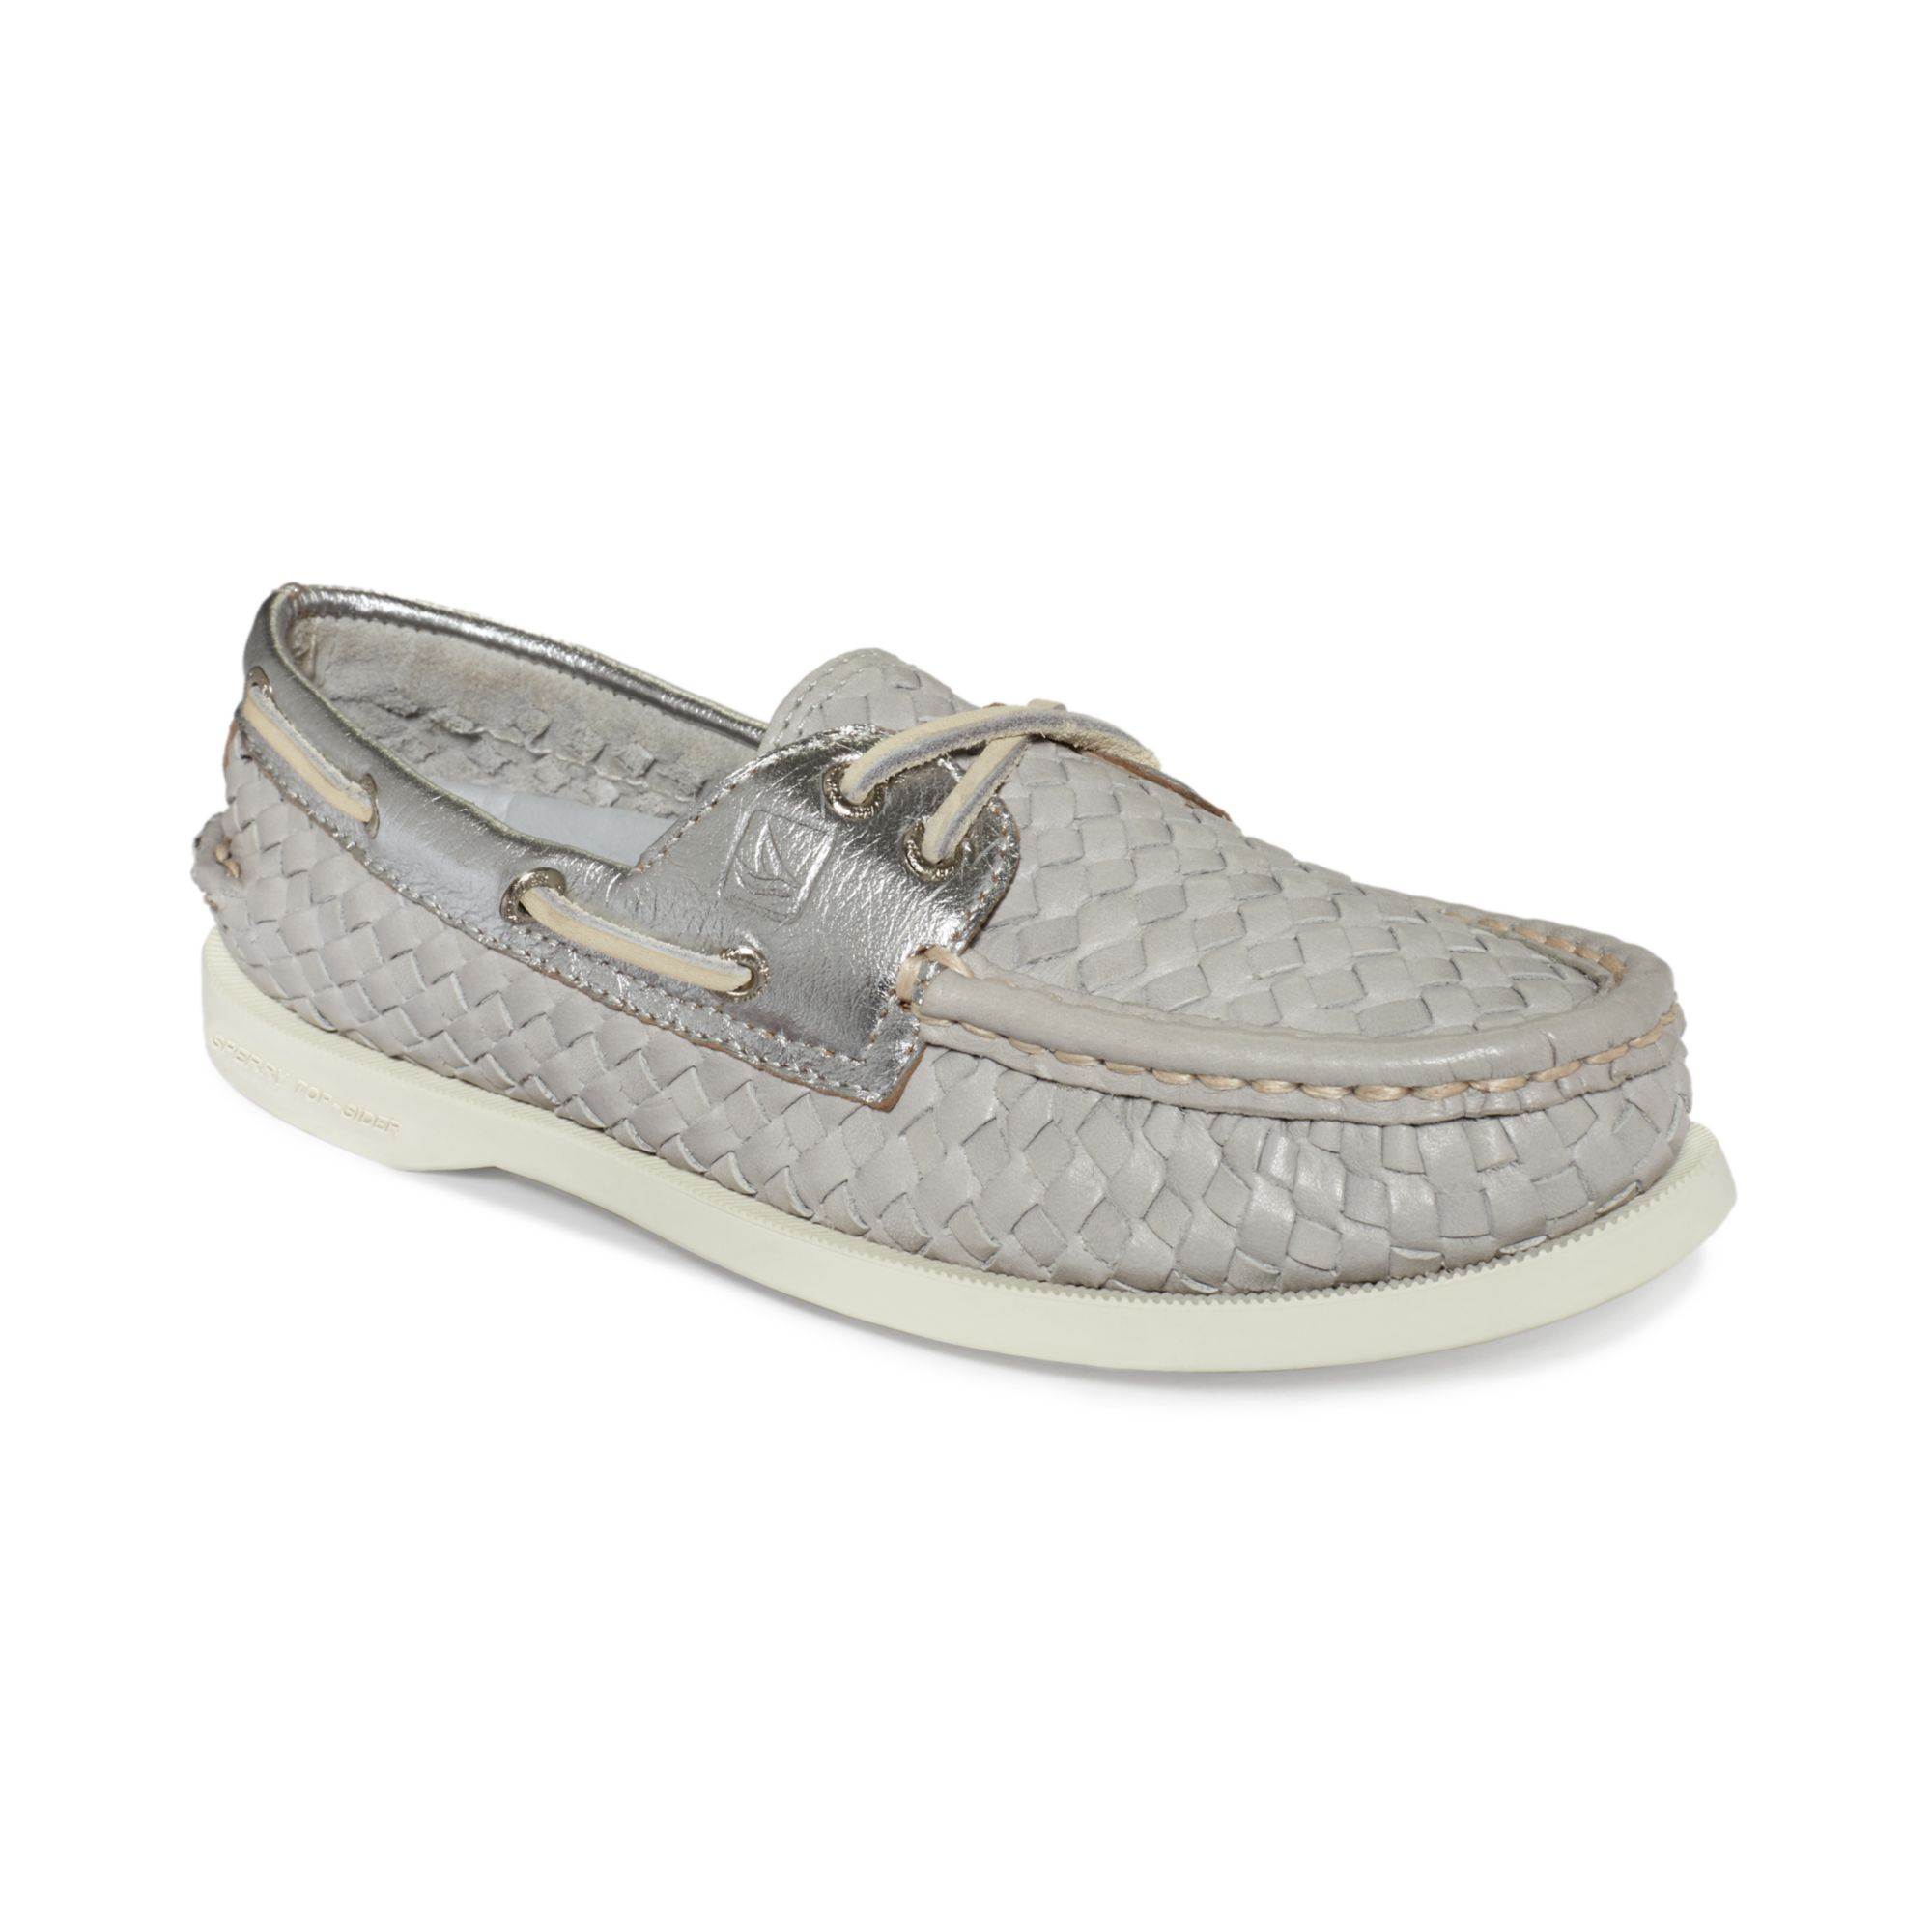 Gray Womens Sperry Boat Shoes